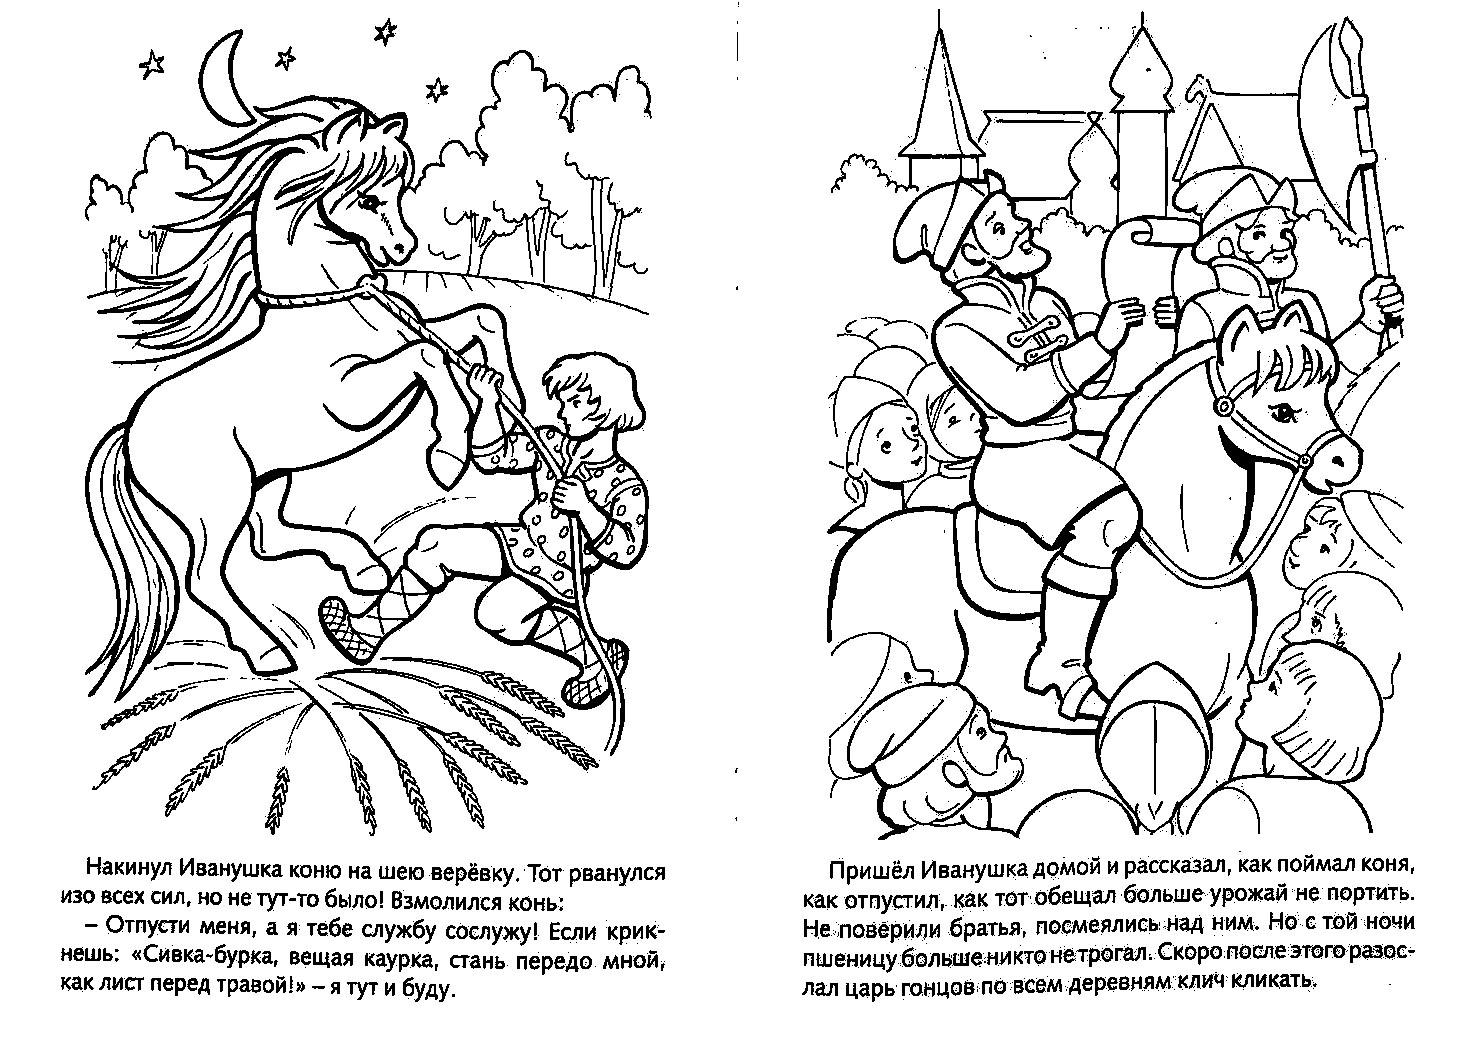 Coloring coloring pages to the tale Sivka burka Ivan and Sivka burka, painting, print